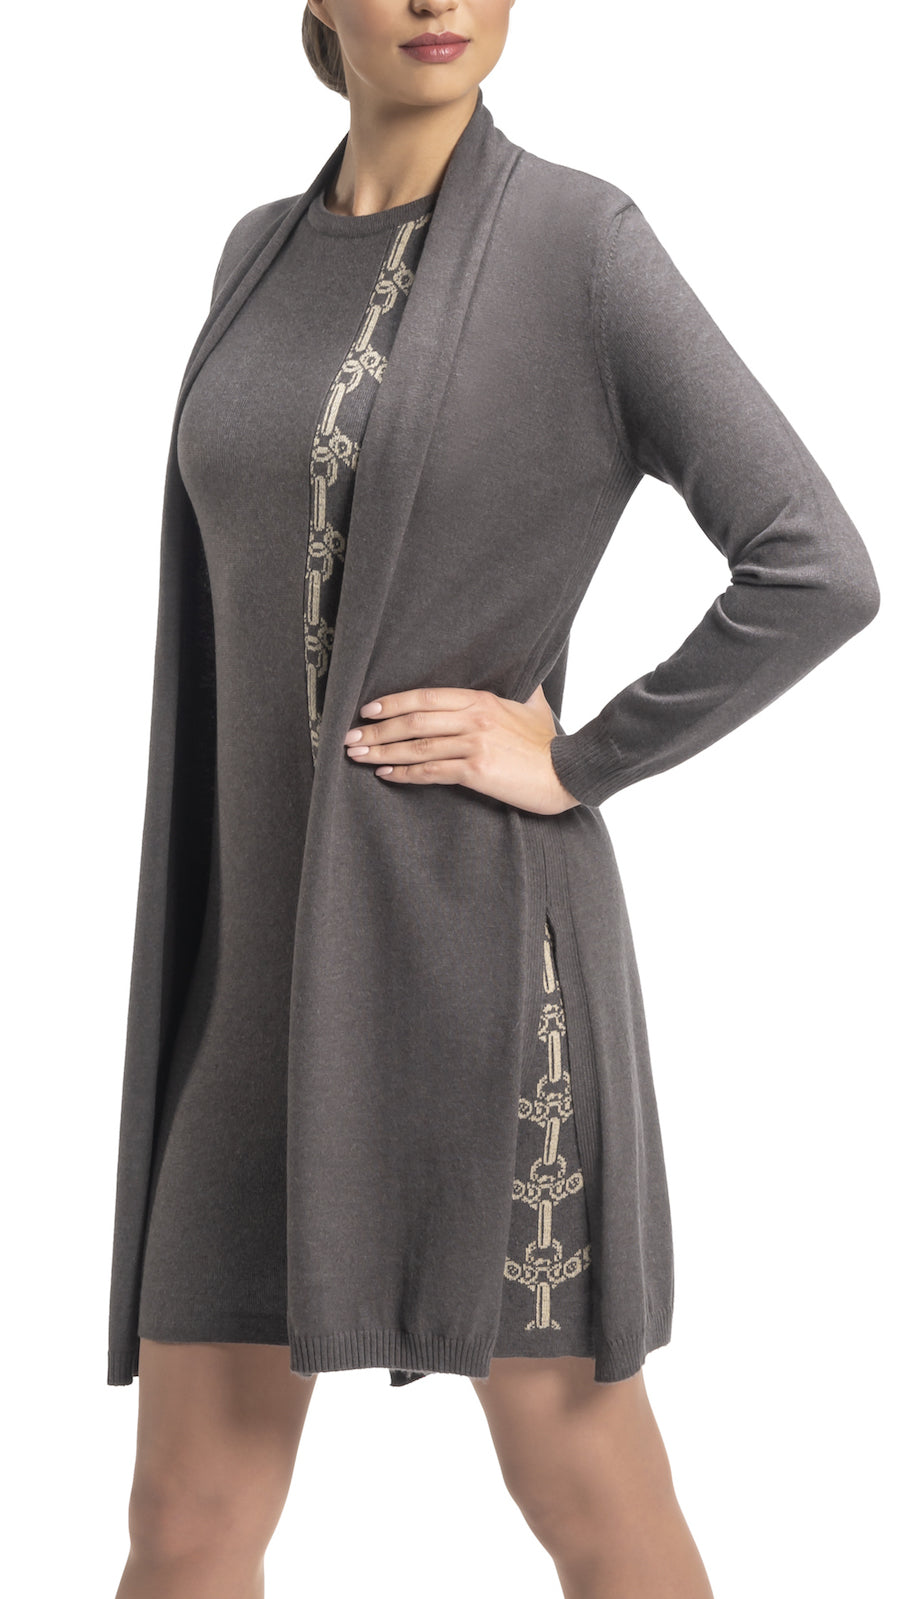 CONTEMPO Tina Long Cardigan, Taupe